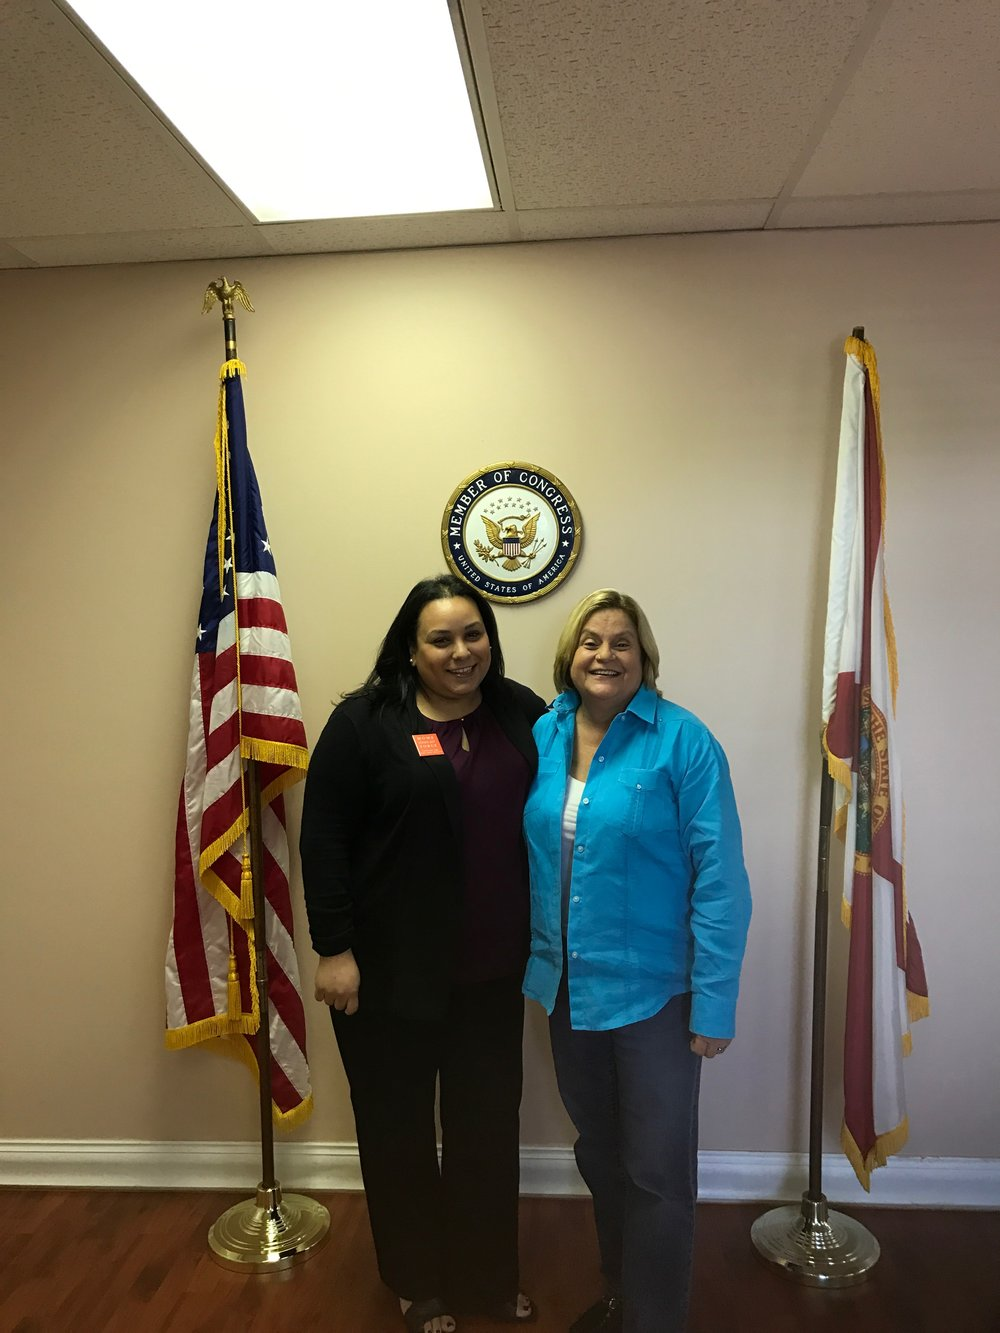 Karina (left) with United States Congresswoman Ileana Ros-Lehtinen (right)